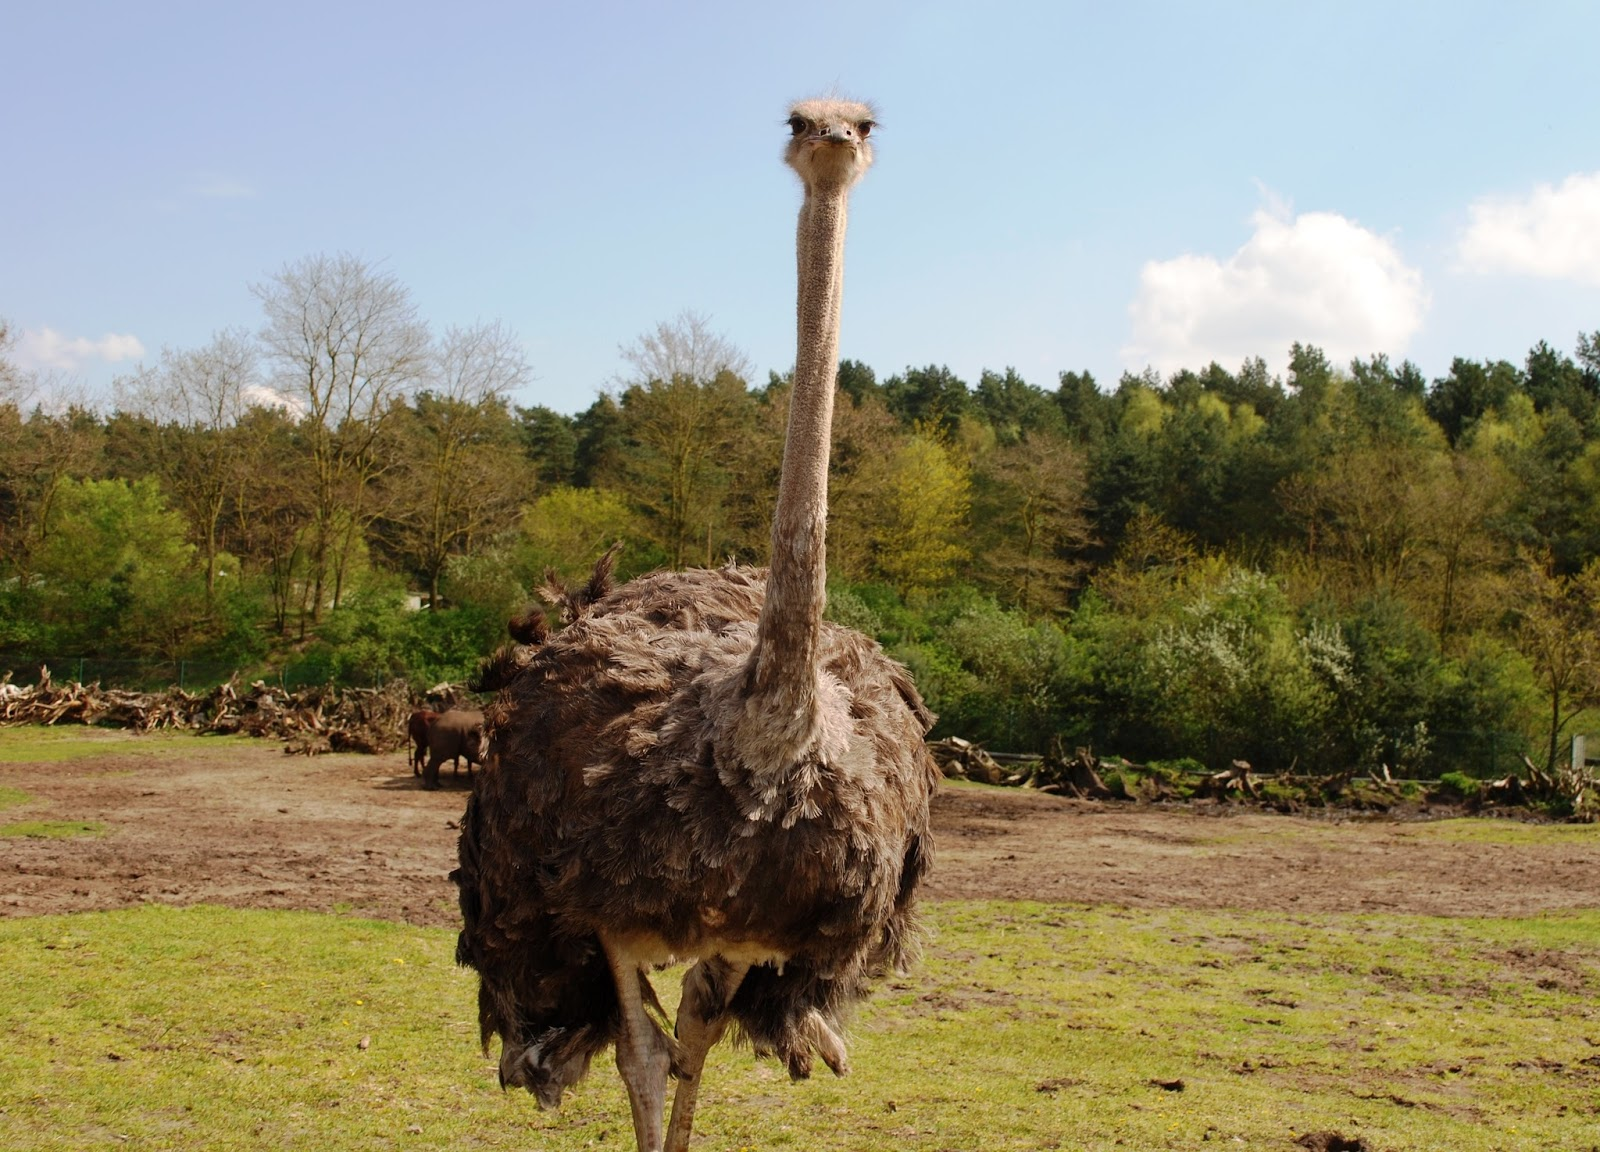 Ostrich's commanding appearance.